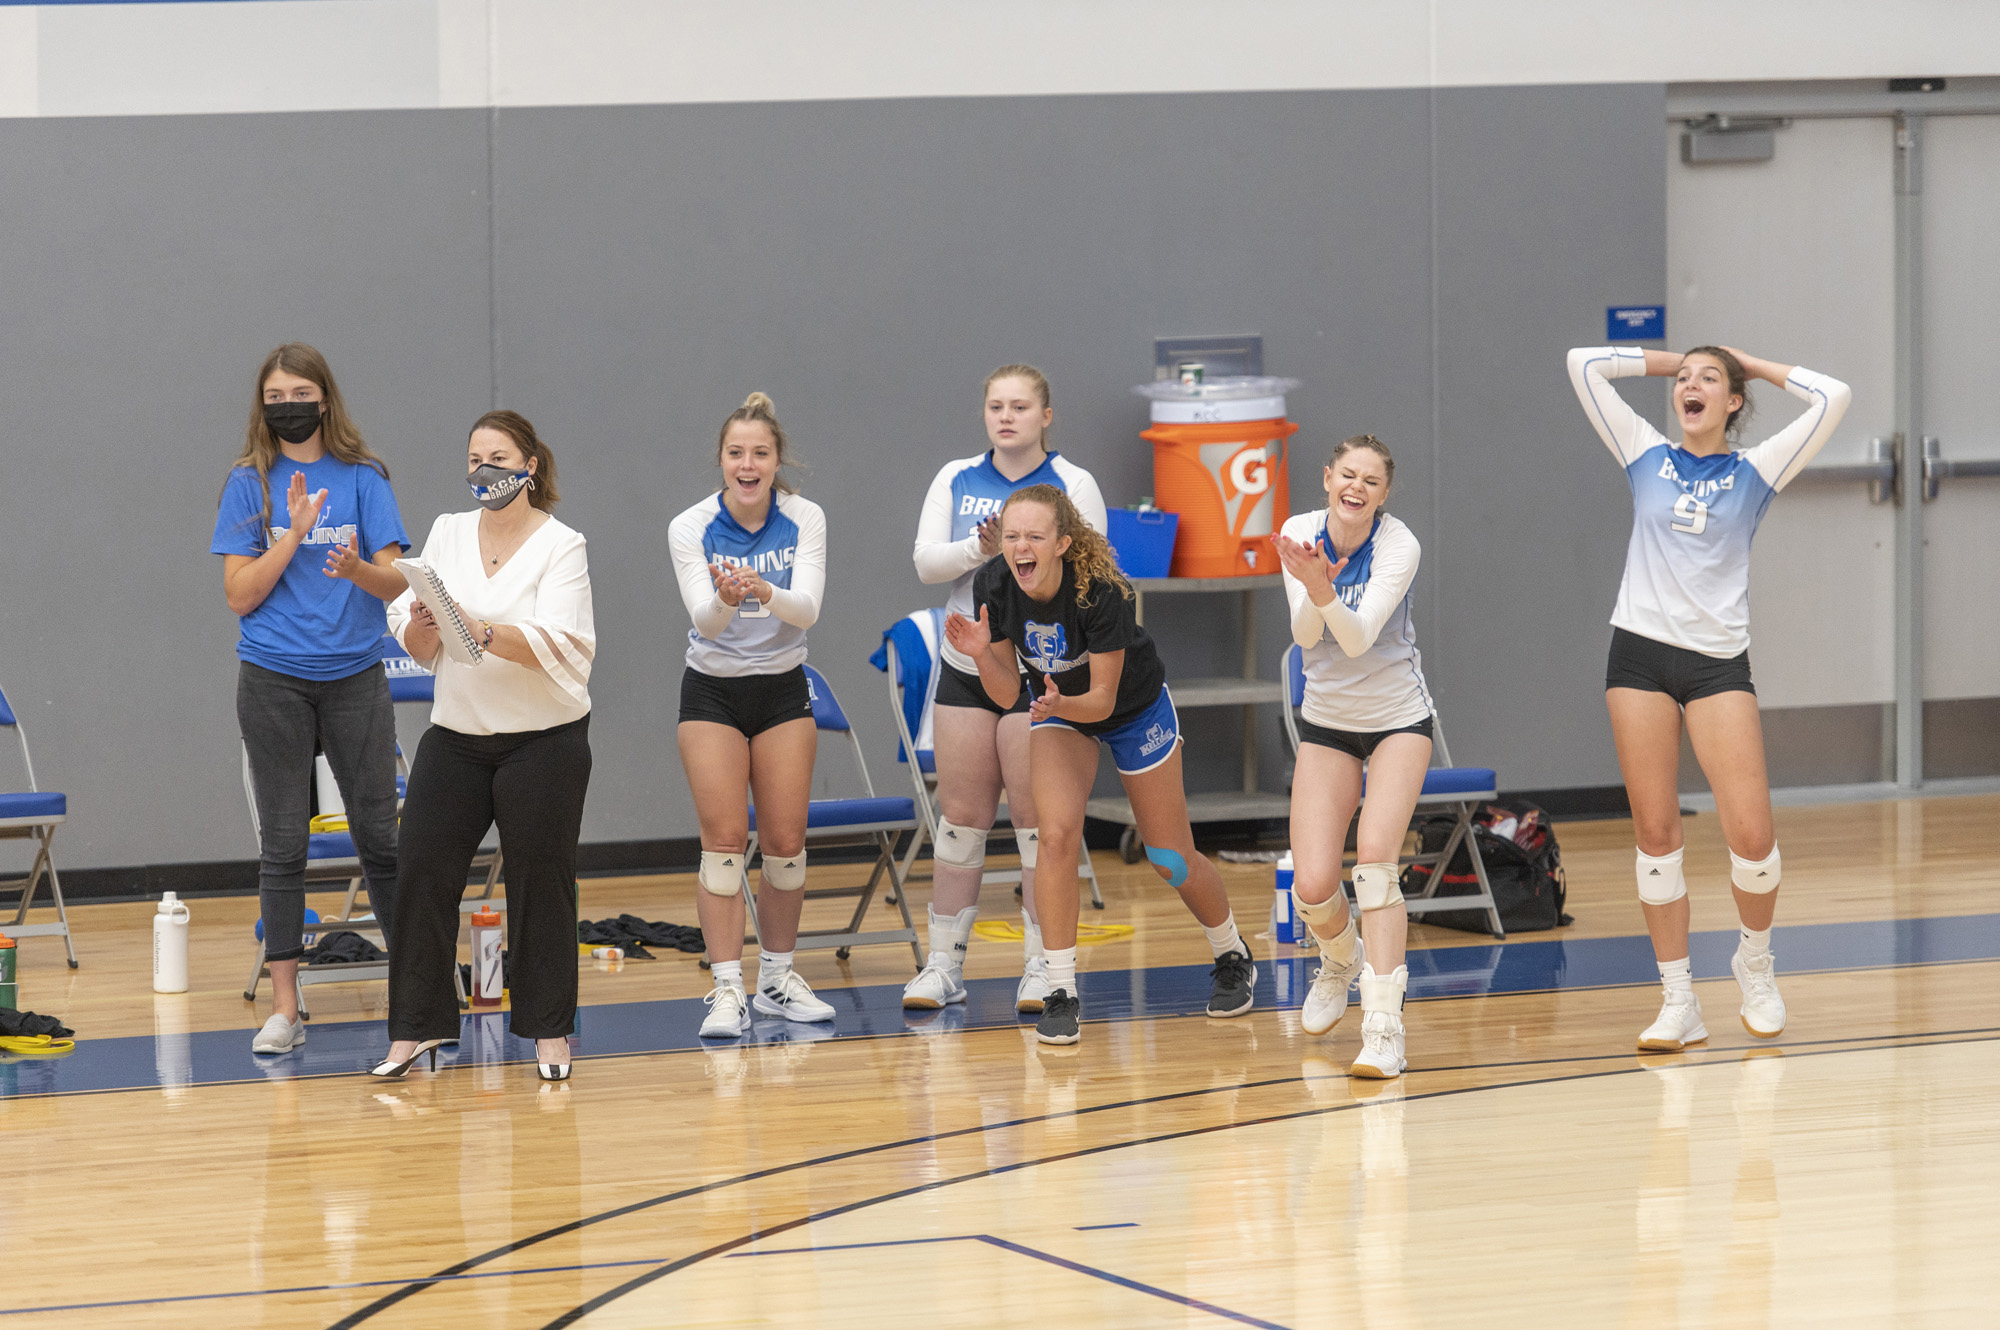 The women's volleyball team celebrates on the sideline after scoring a point.